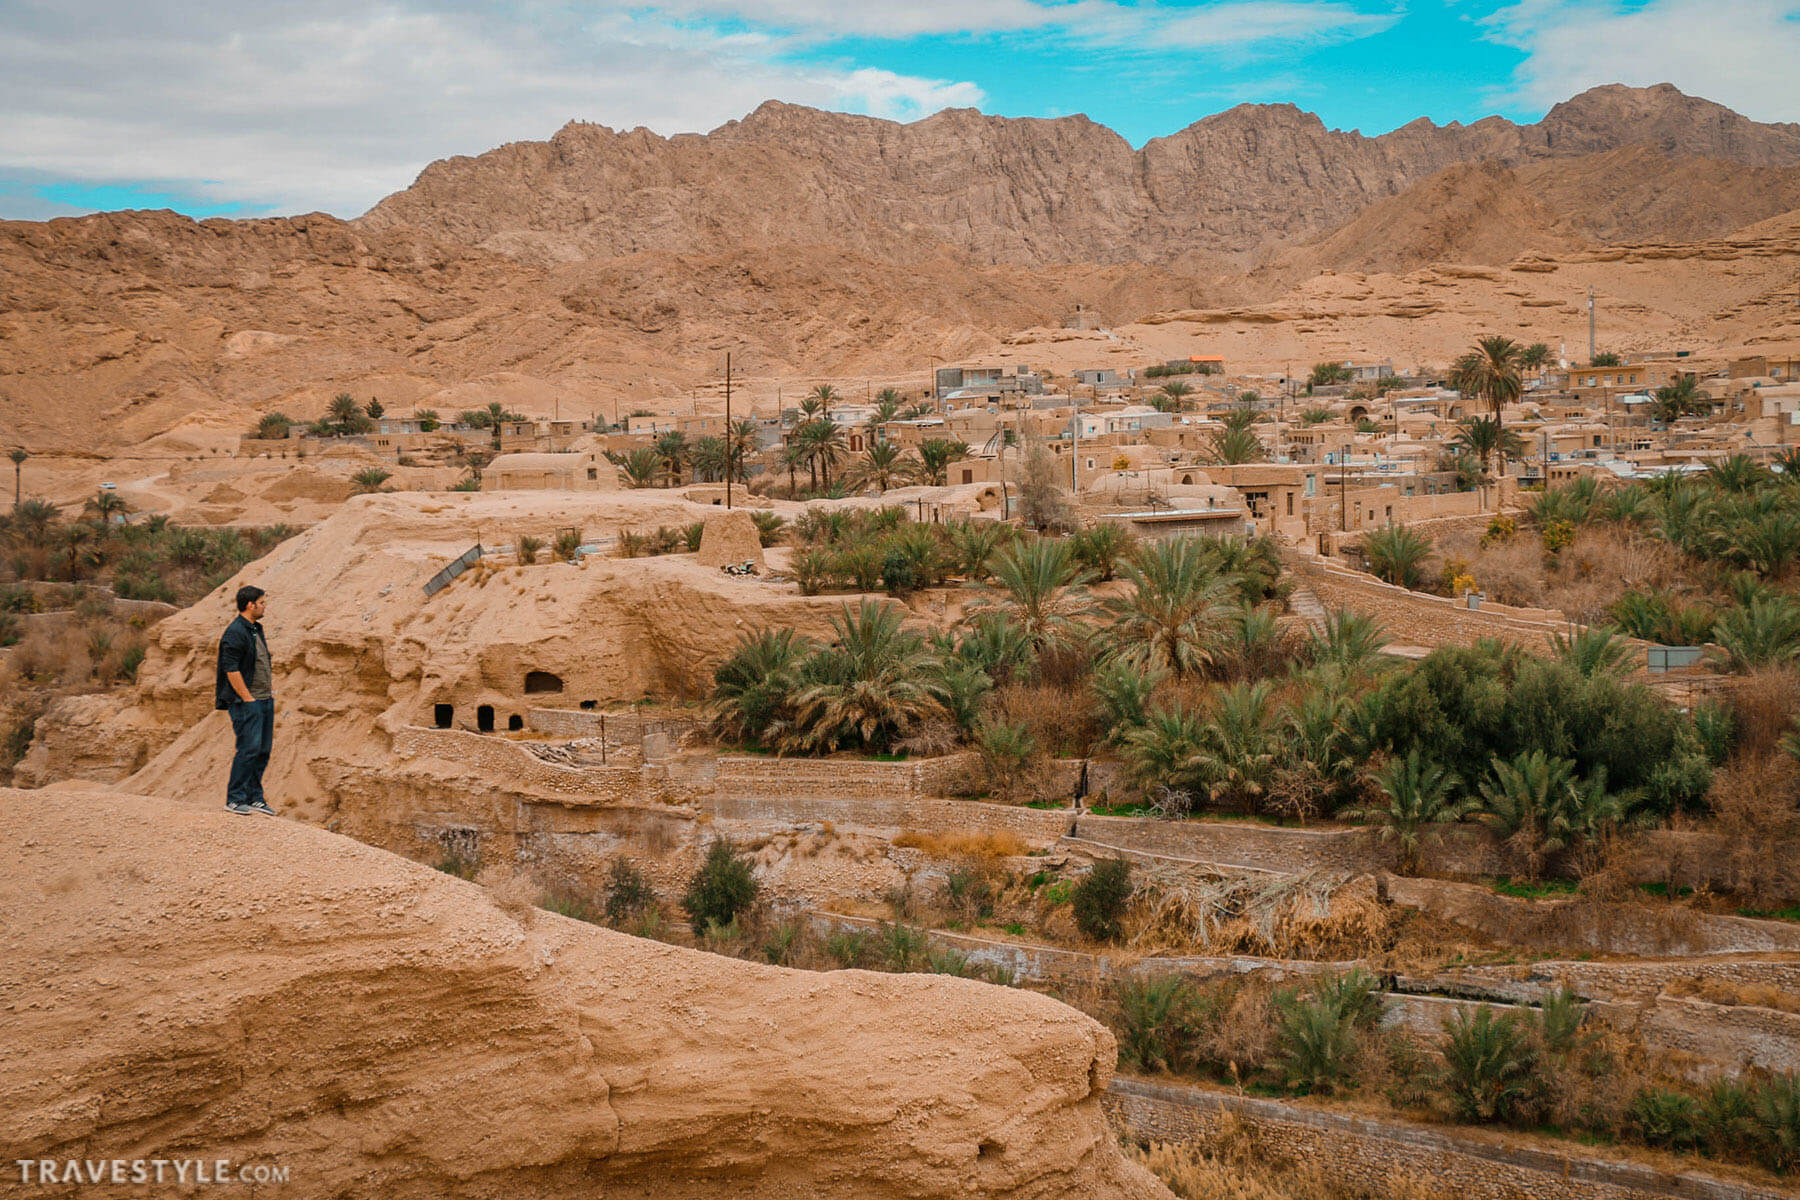 Tabas, Iran | An Itinerary for the Land of Canyons and Oasis